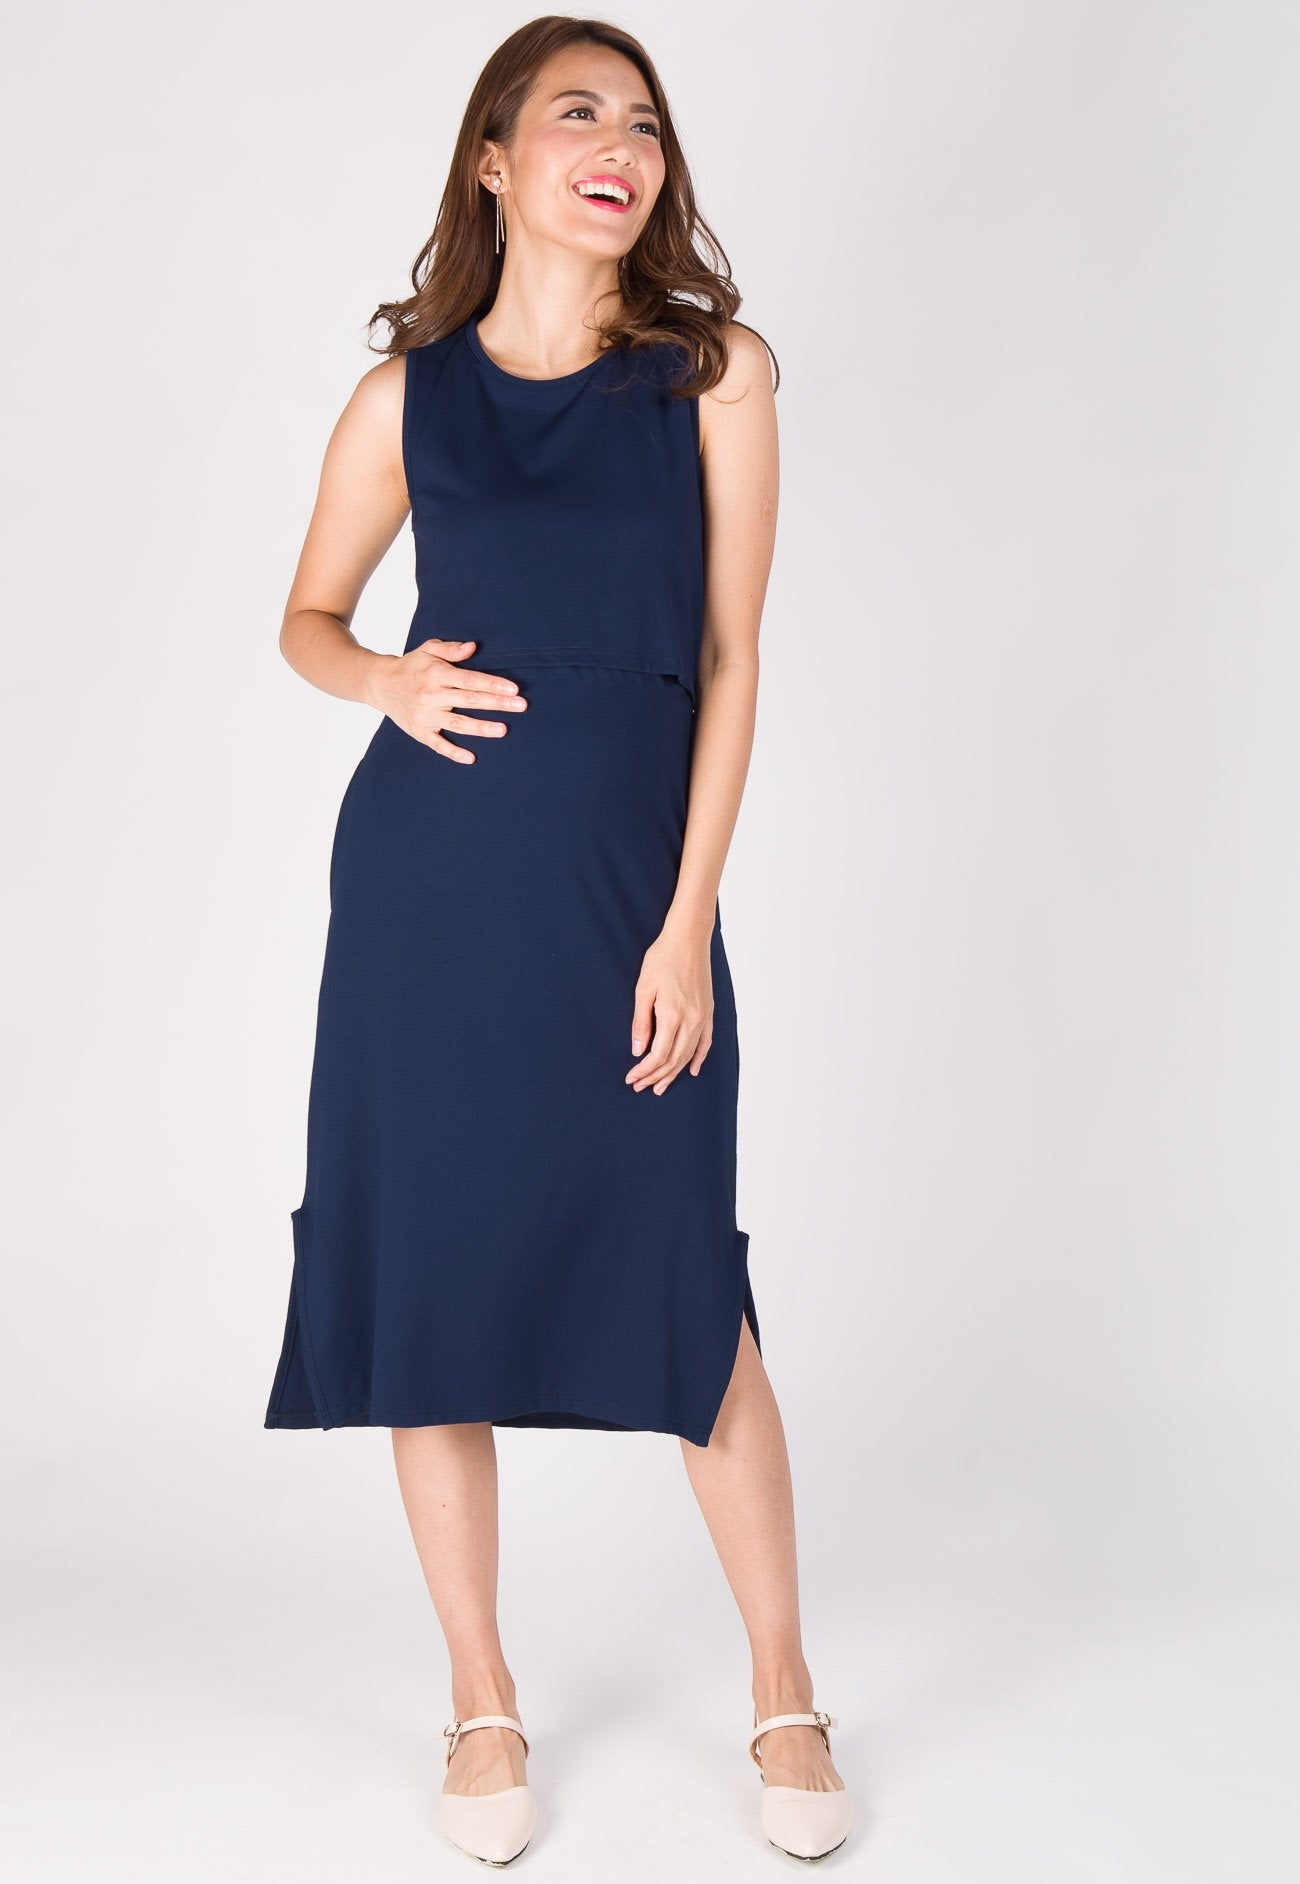 Sleek Slit Nursing Dress in Navy Nursing Wear Mothercot